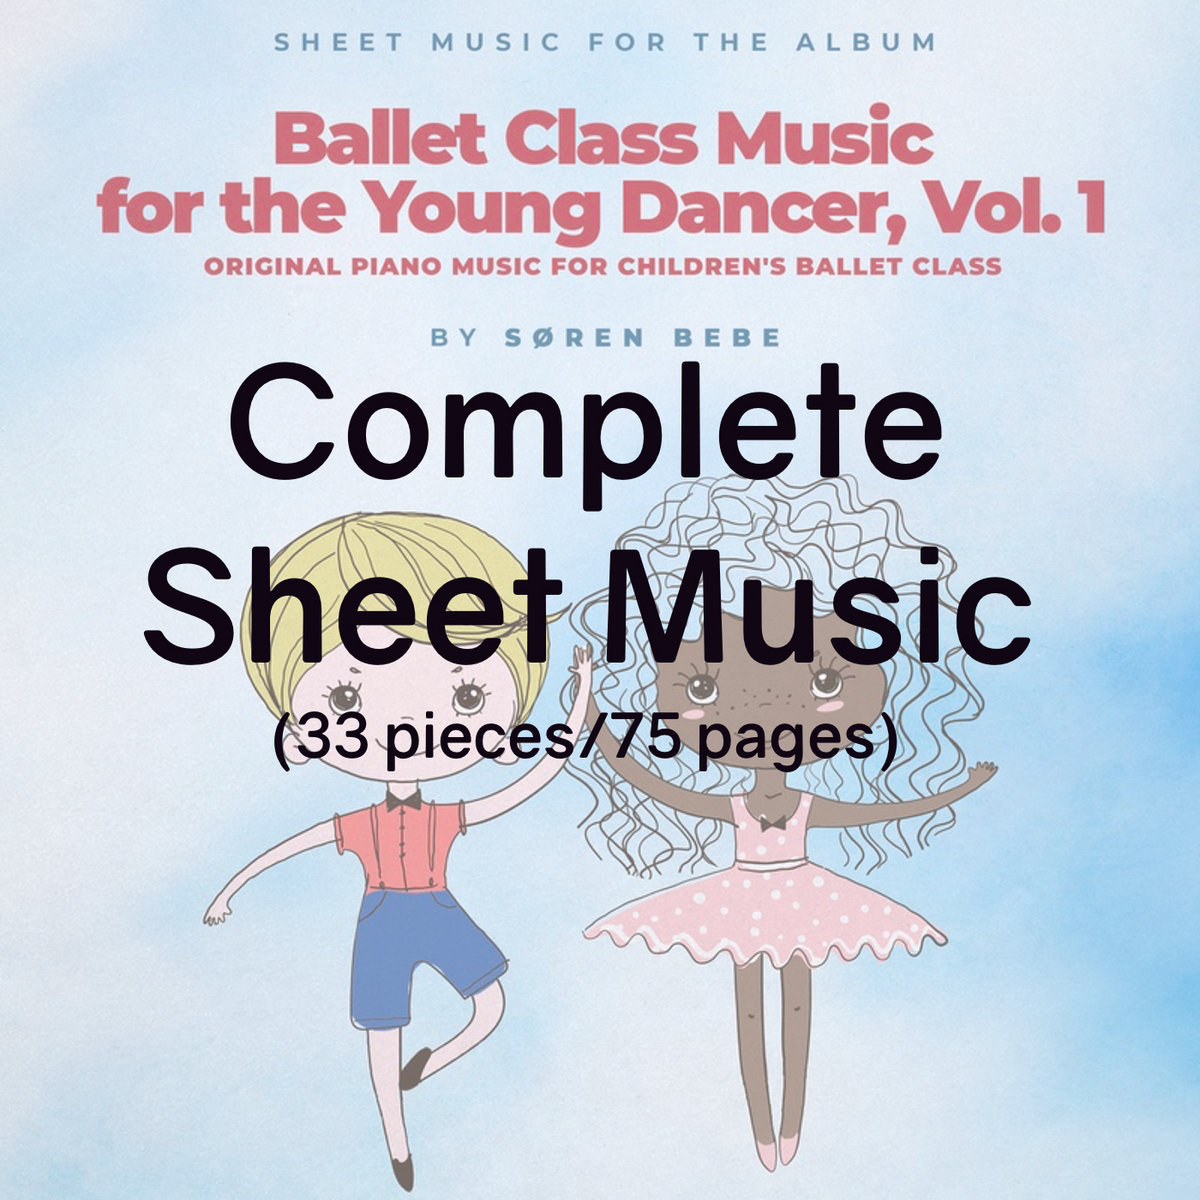 Complete Sheet Music For Ballet Class Music For The Young Dancer Vol 1 Søren Bebe